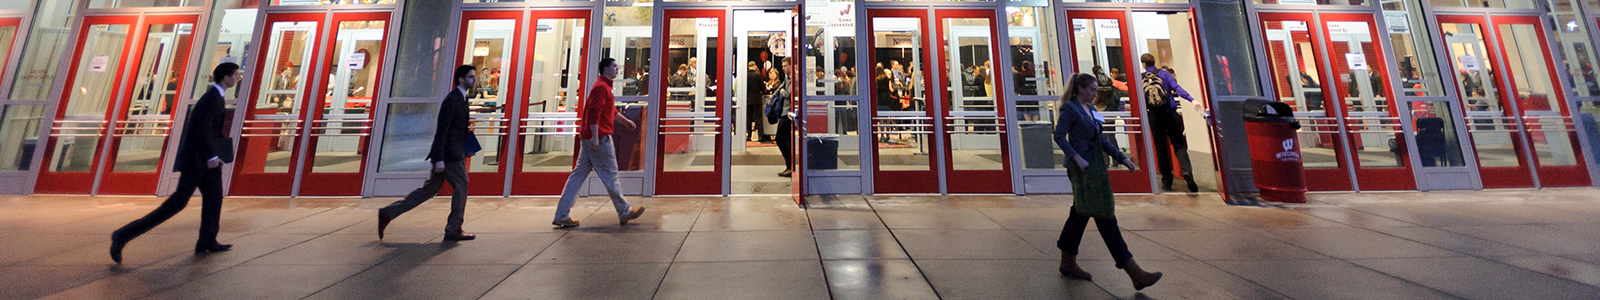 Outside Kohl Center during the Career and Internship Fair. students in professional attire walk in front of the building.